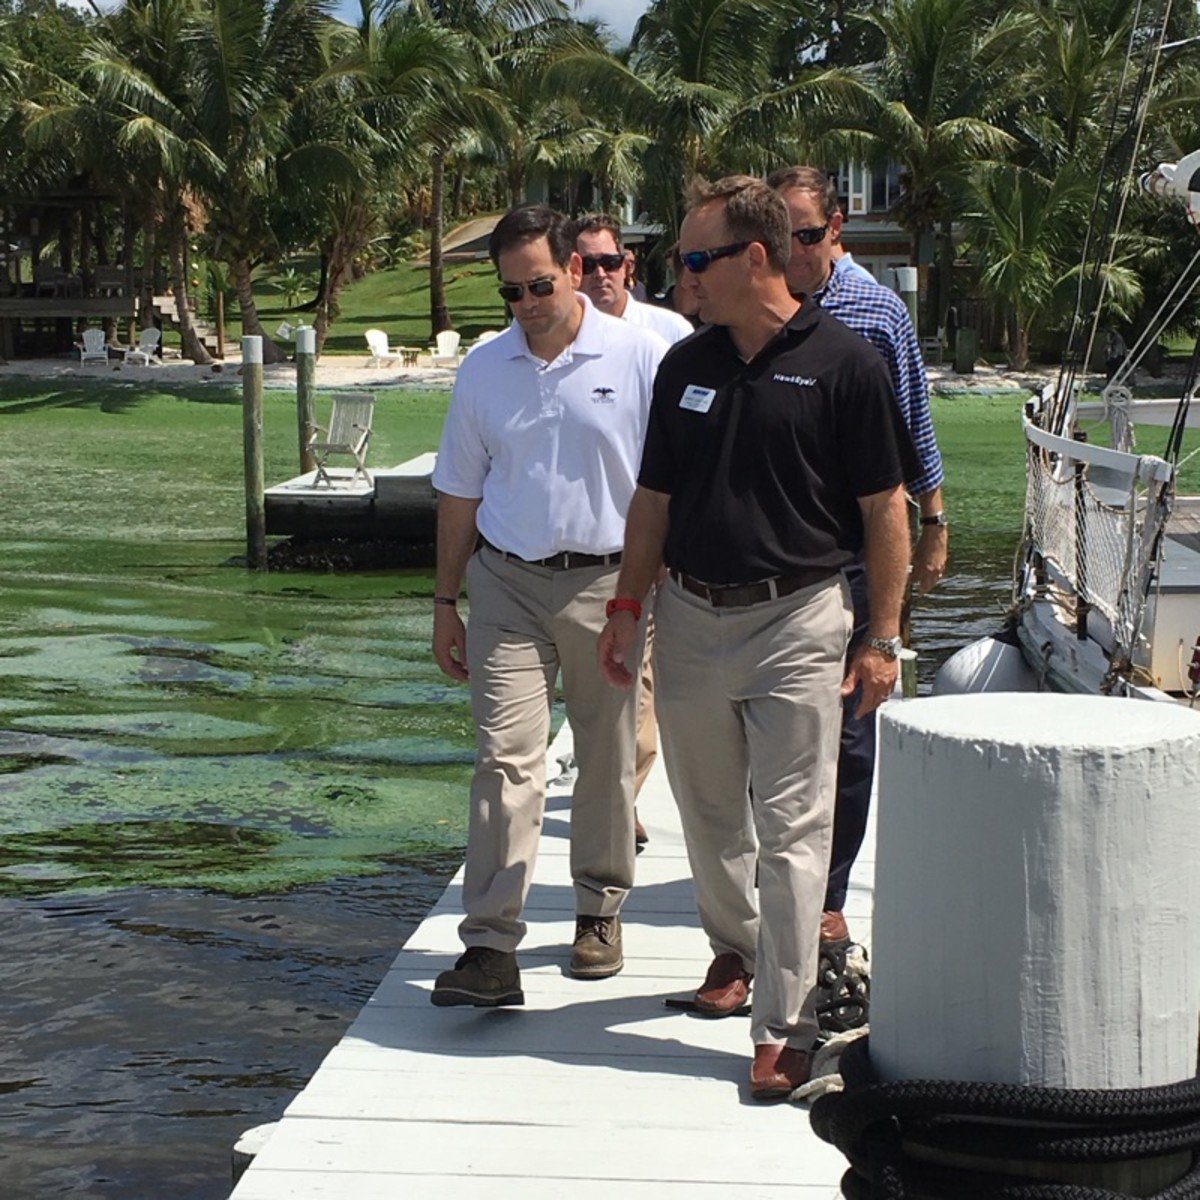 Sen. Marco Rubio's visit to the Lucie River algae bloom, accompanied by NMMA member and Norcross Marine Products CEO Greg Lentine and members of the South Florida Water Management, prompted the senator to appeal to President Obama.